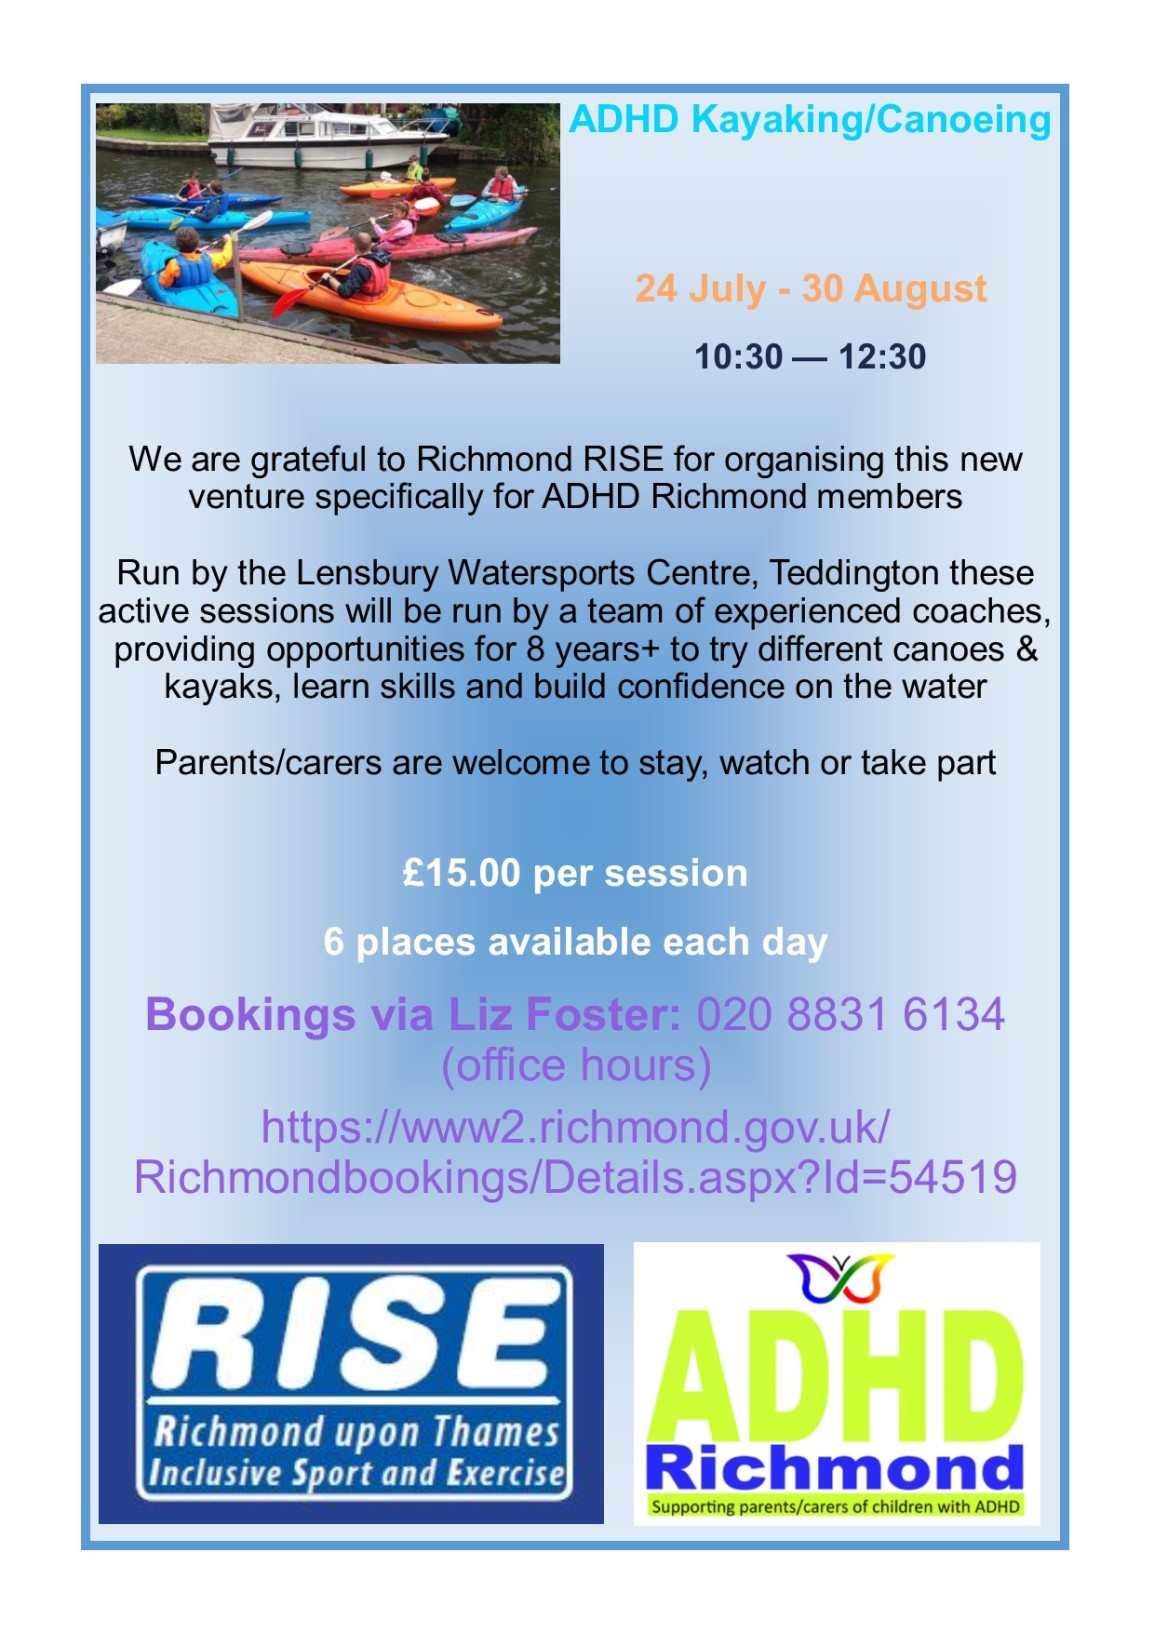 Extra #ADHD #canoe #kayak dates from @RISE_Richmond July 24 -30 Aug:  Book now via Liz Foster: 020 8831 6134 or https://www2.richmond.gov.uk/Richmondbookings/Details.aspx?Id=54519 Open to children from ANY Borough